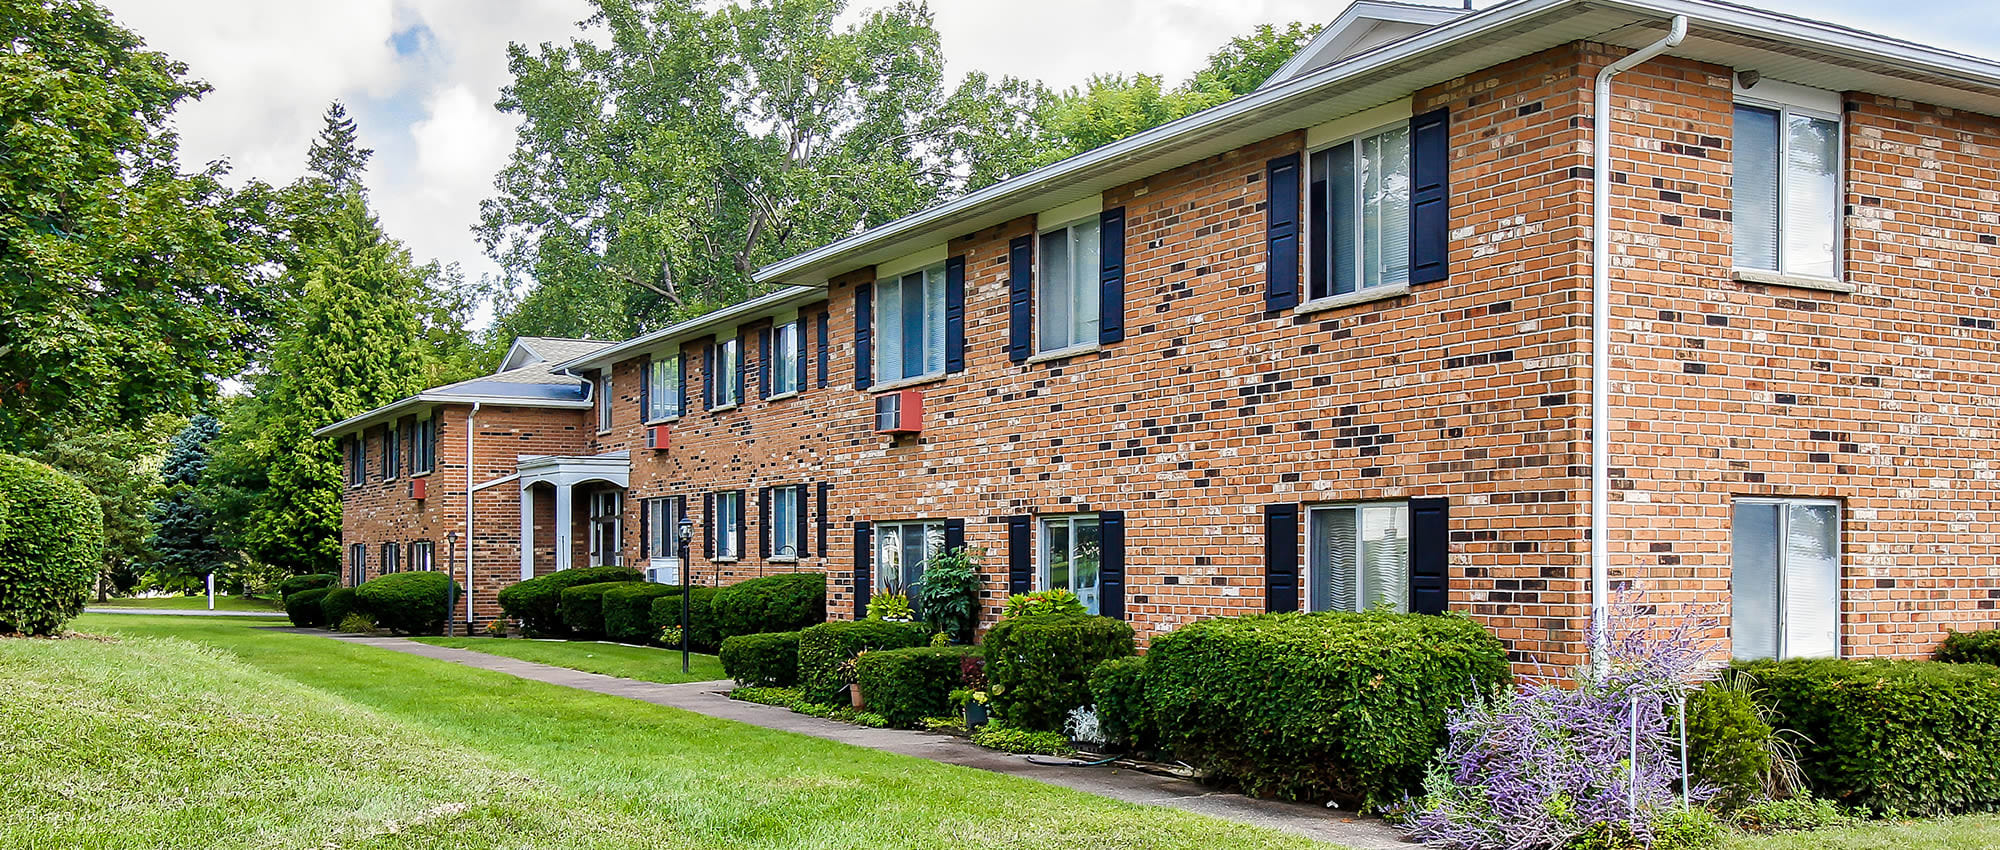 Apartments at Knollwood Manor Apartments in Fairport, New York